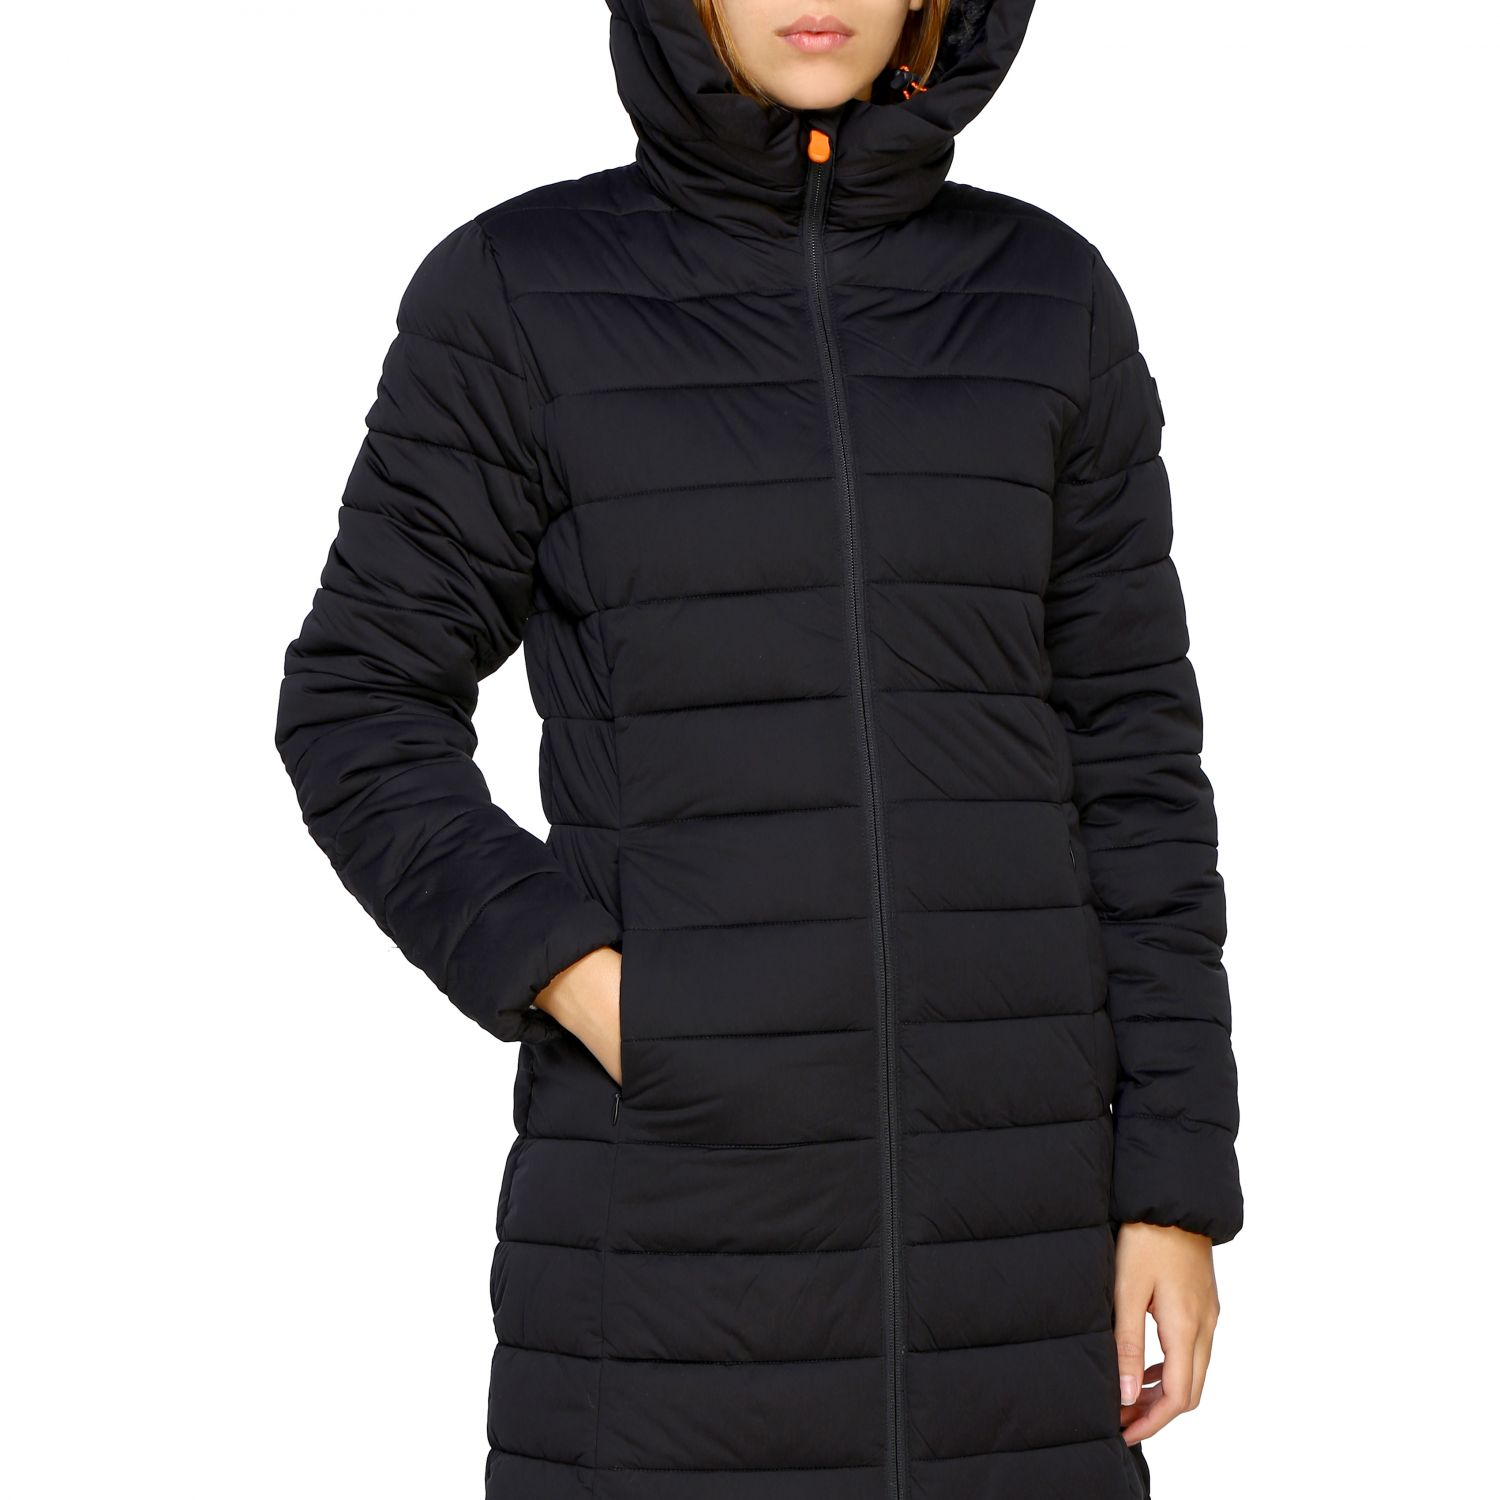 Chaqueta Save The Duck: Chaqueta mujer Save The Duck negro 4